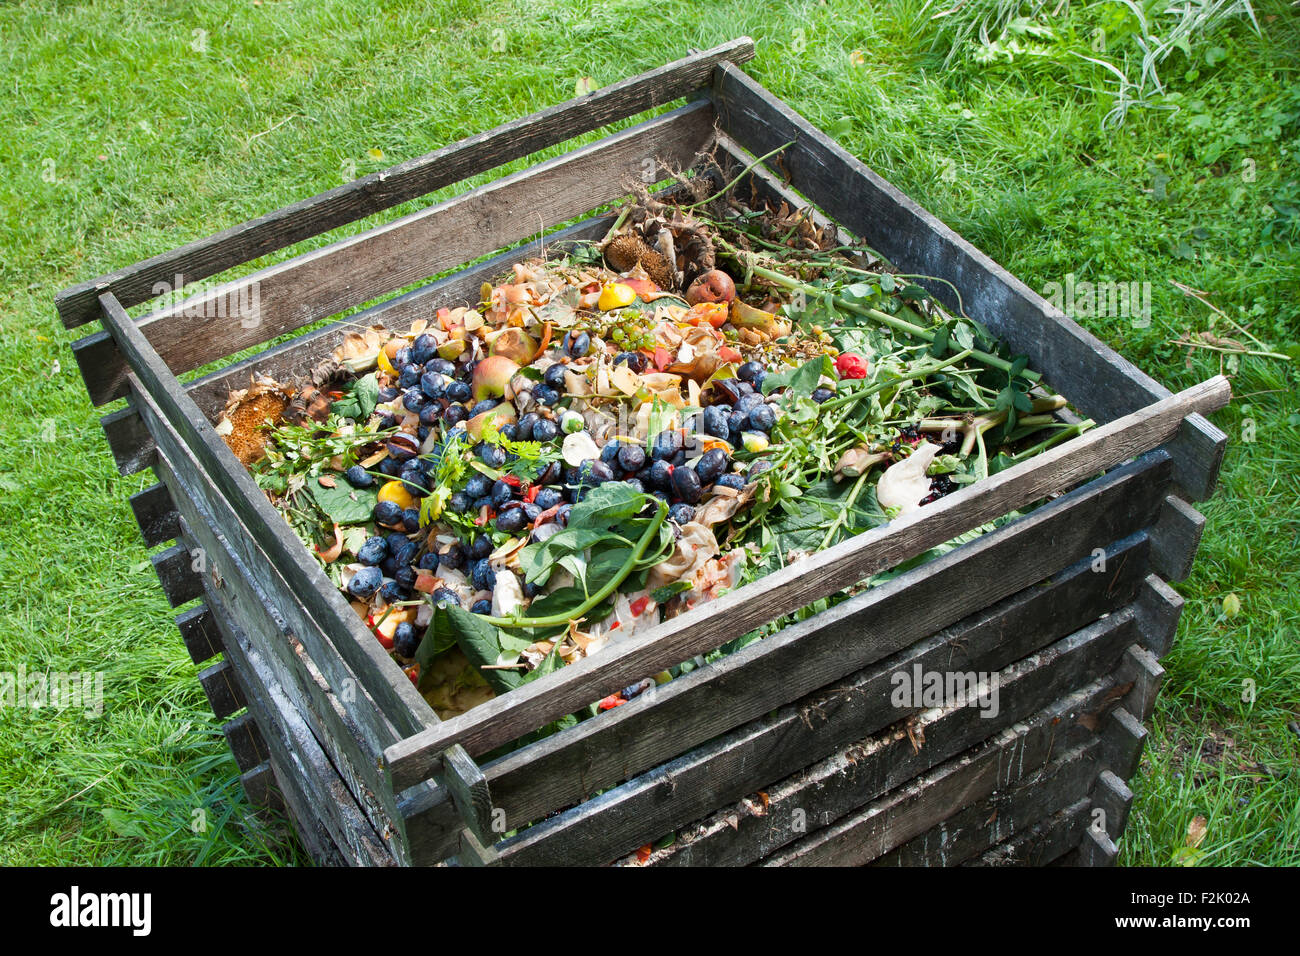 Compost bin in the garden. Composting pile of rotting kitchen fruits and vegetable scraps - Stock Image